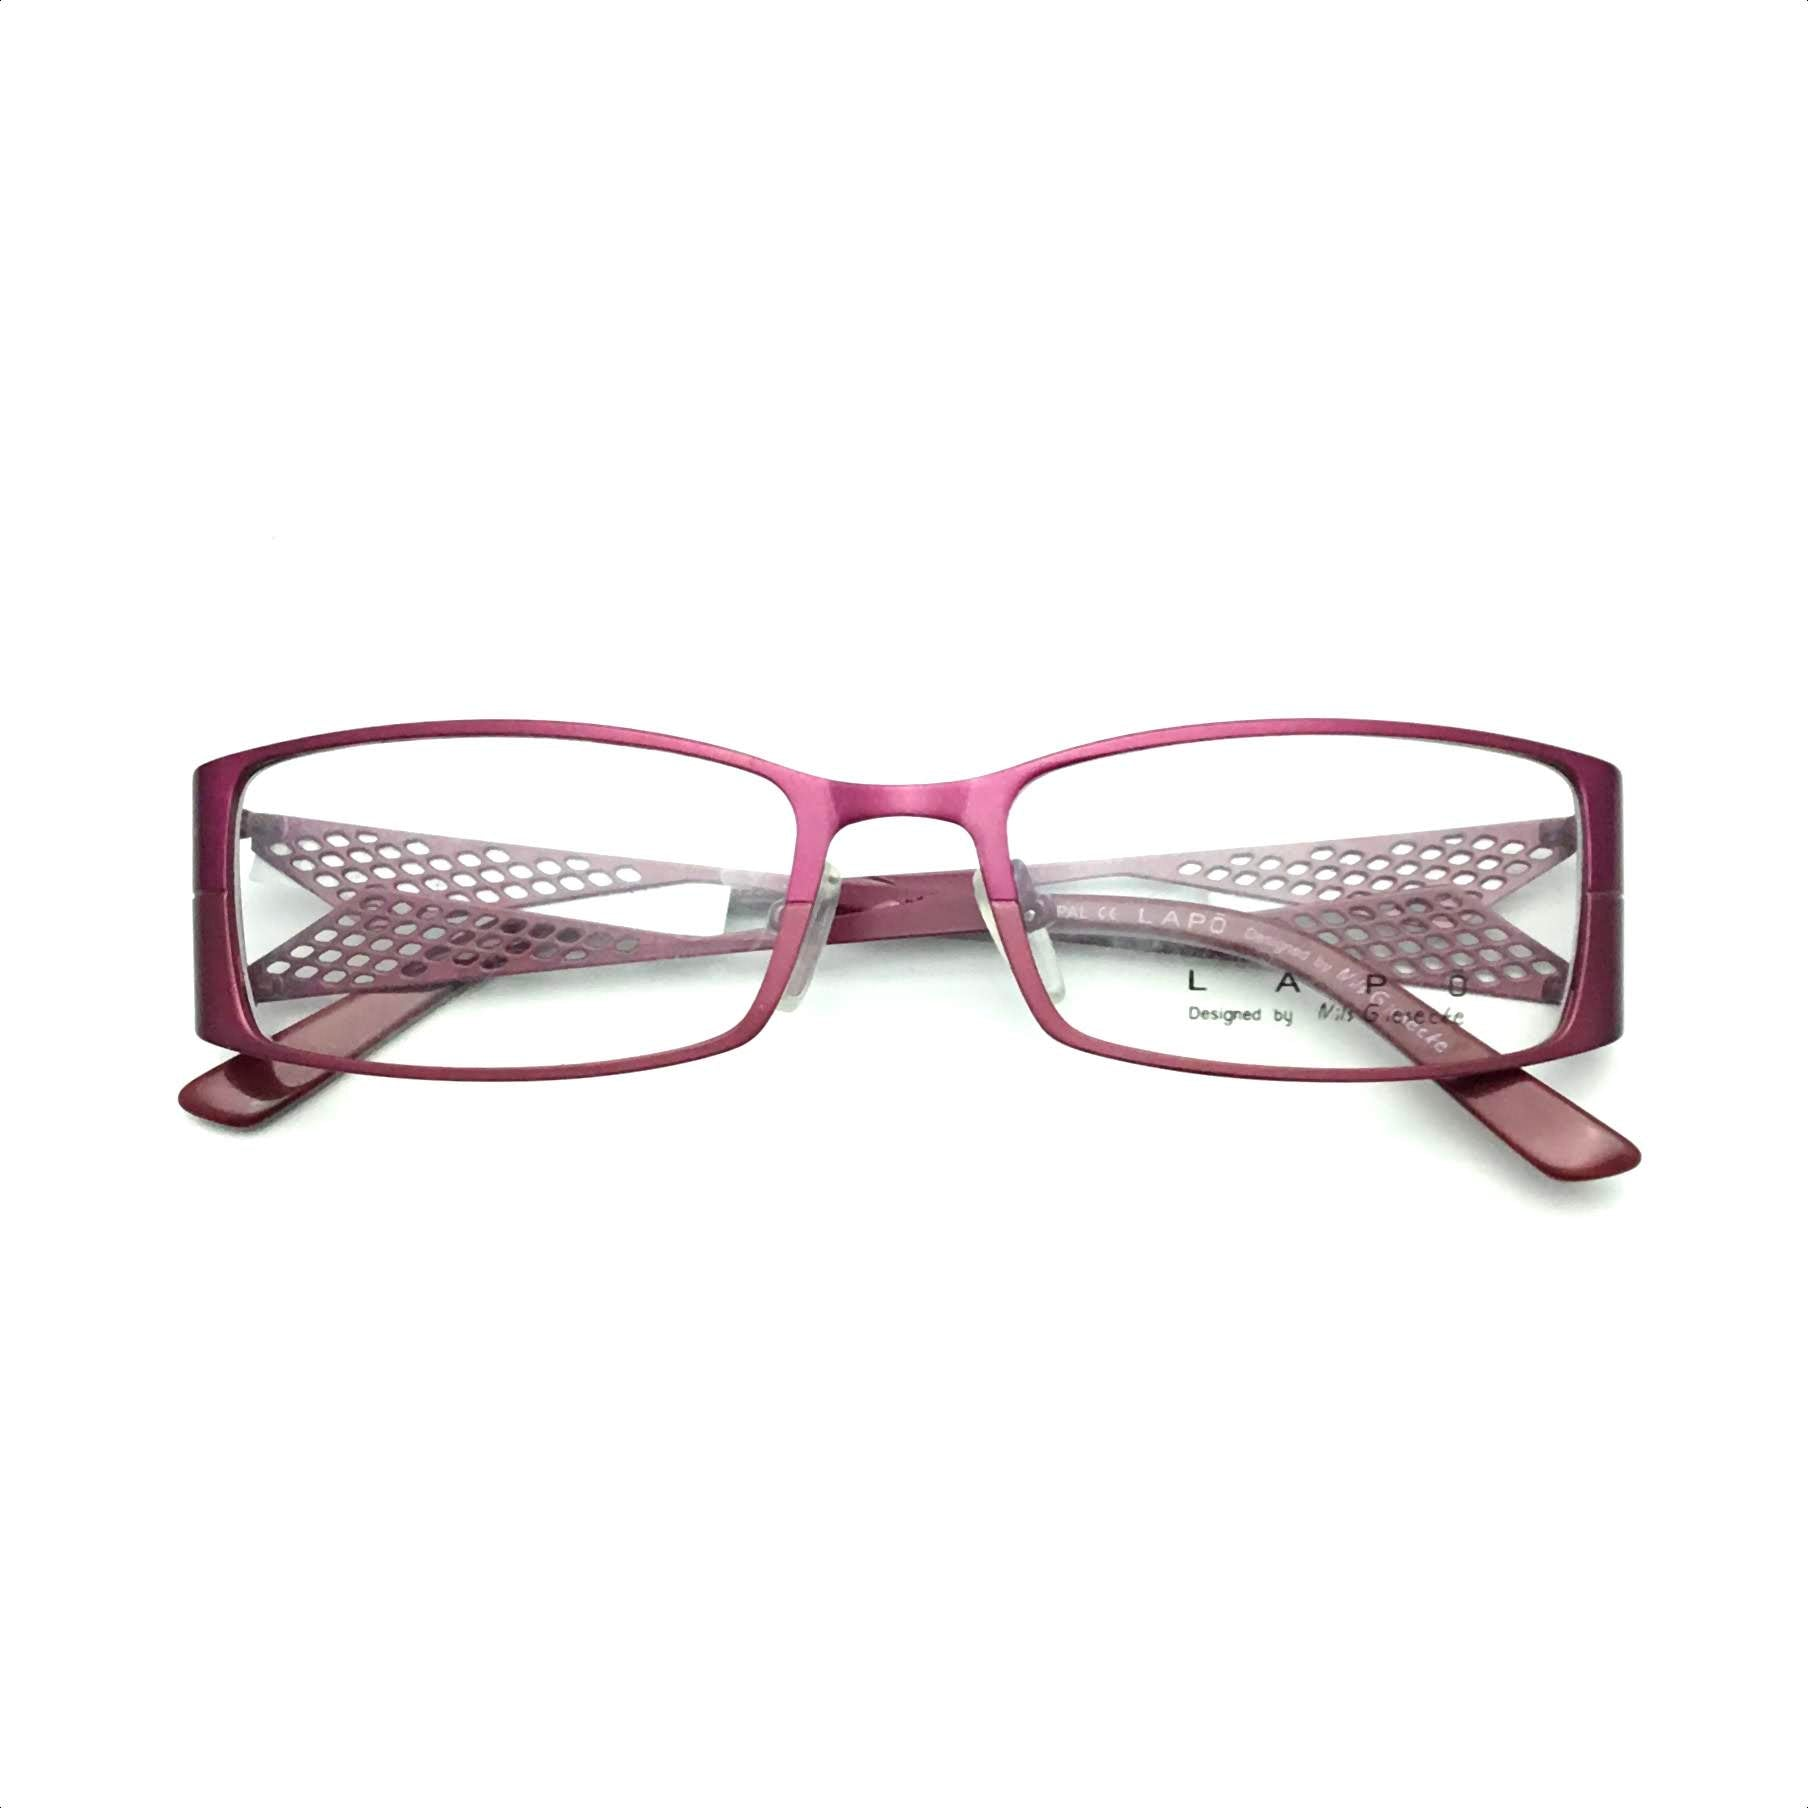 Lapo Glasses $109 ITALY D13